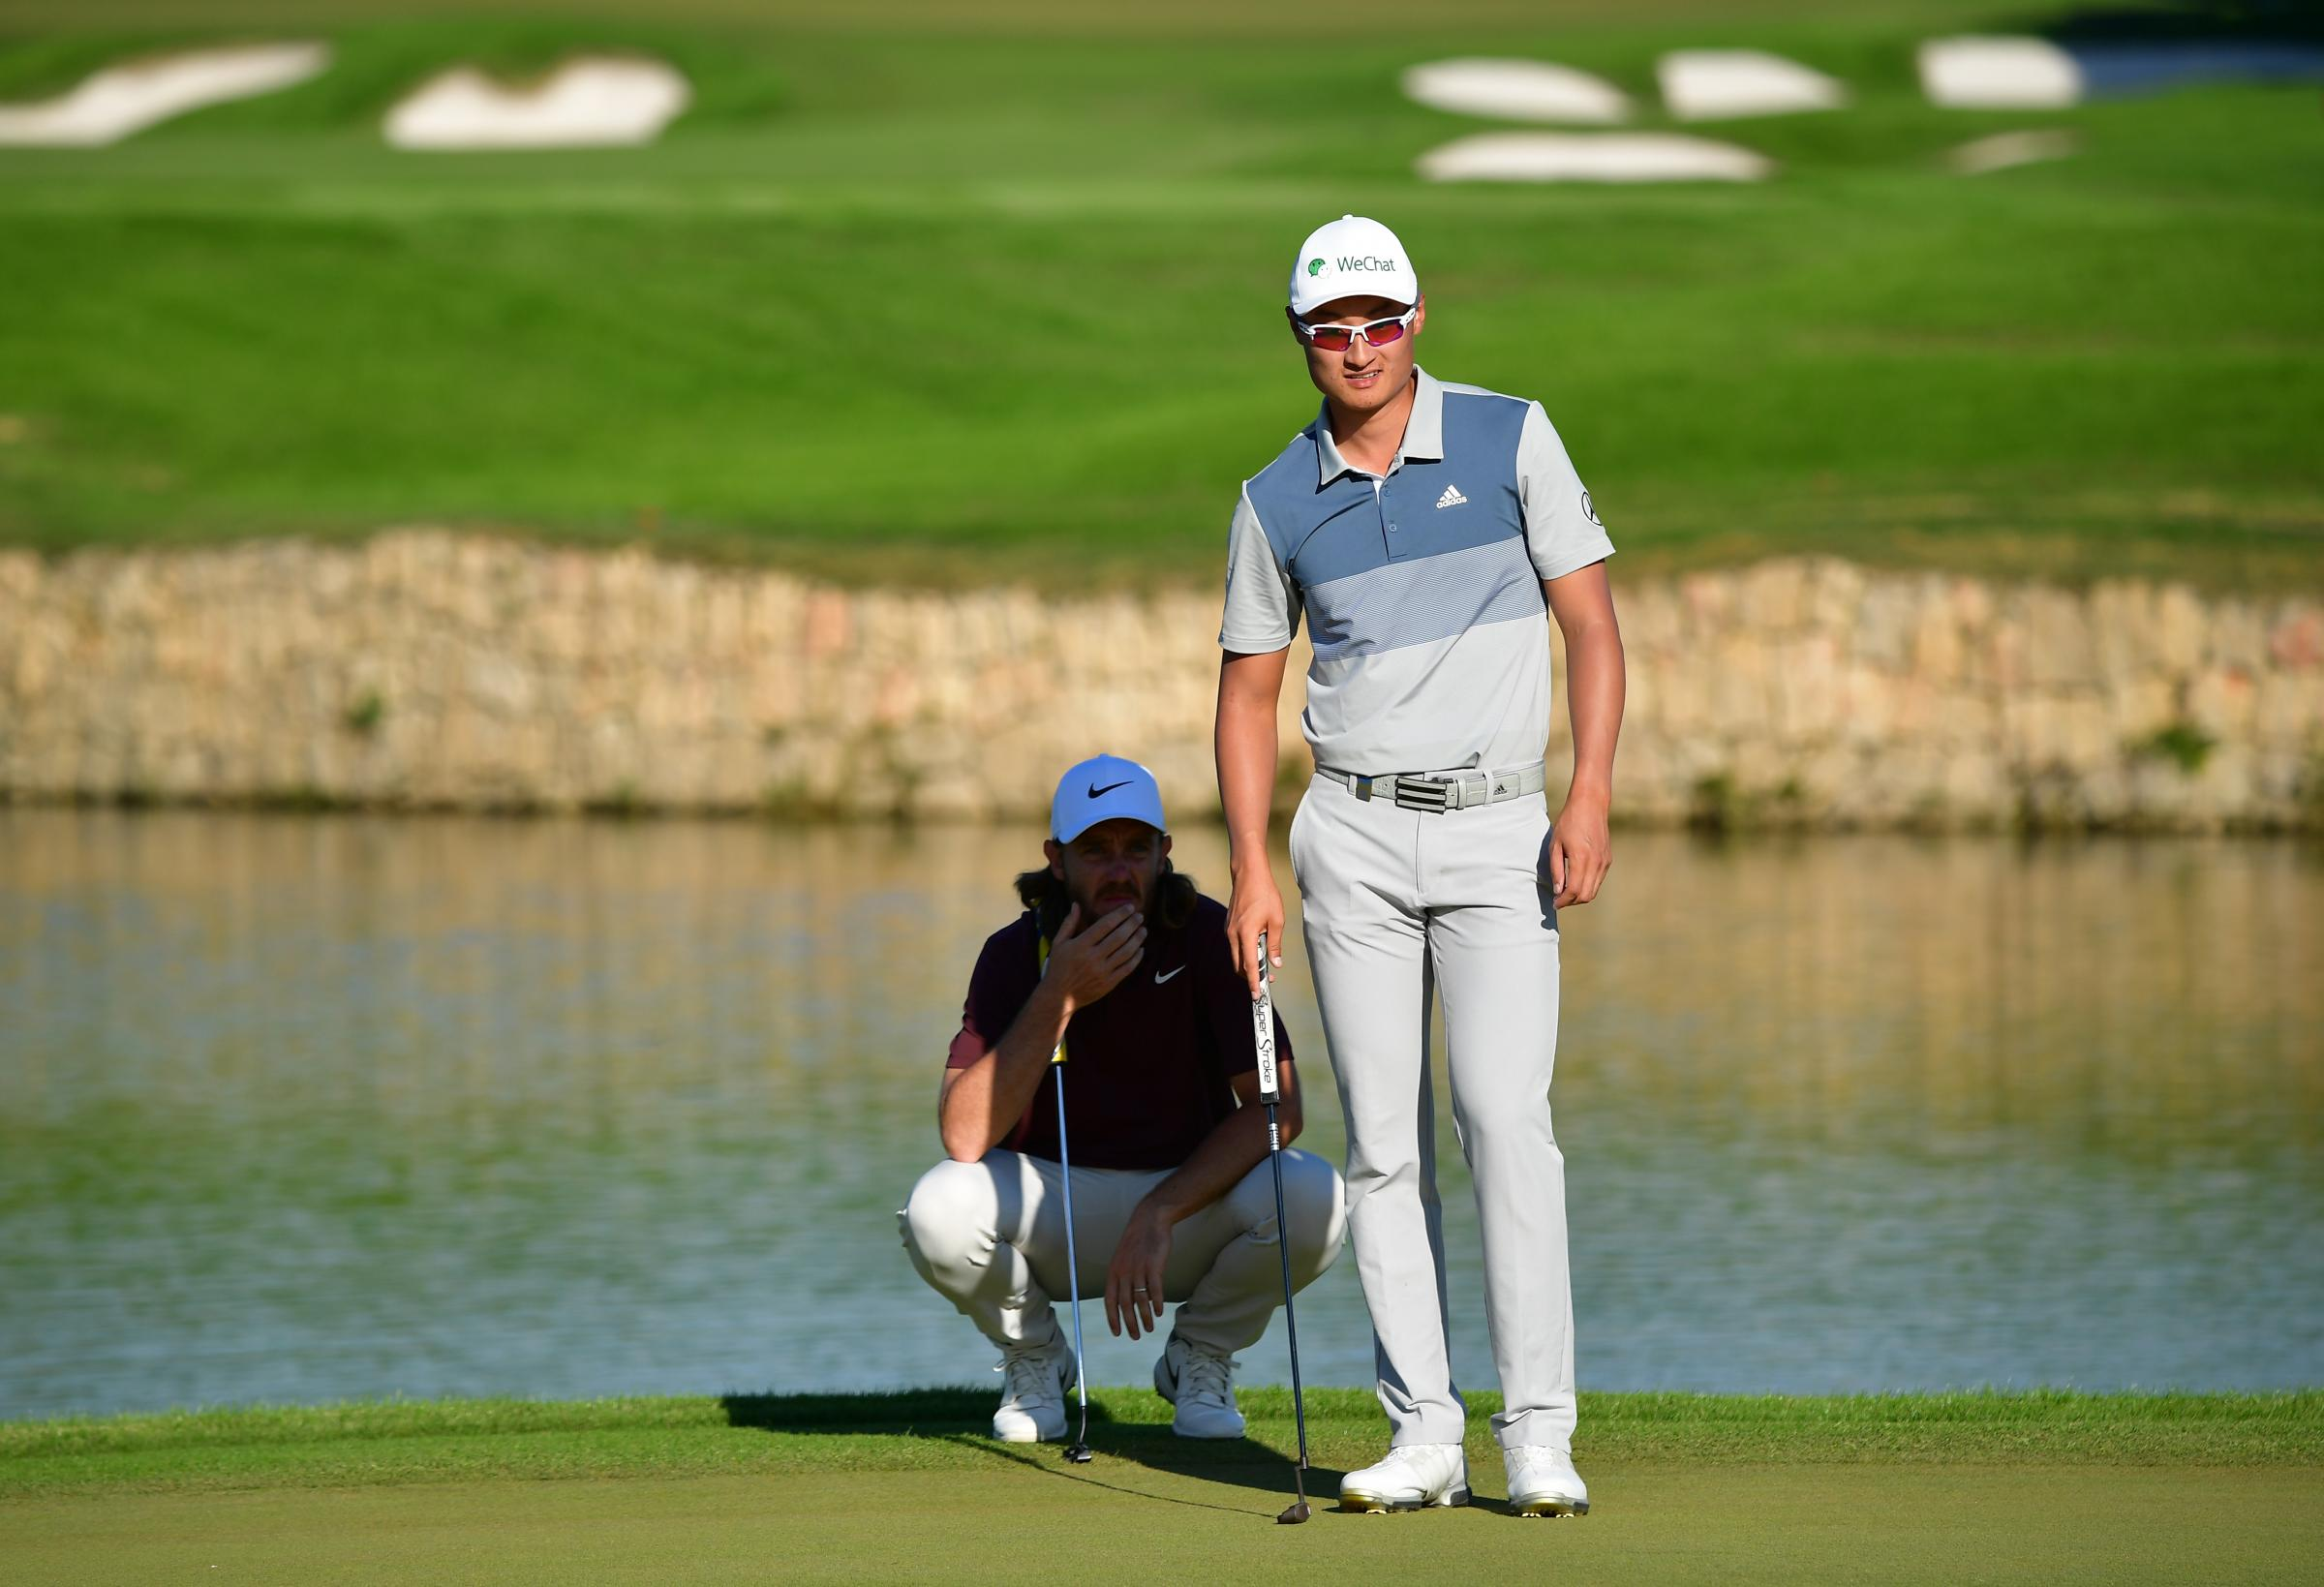 ANTALYA, TURKEY - NOVEMBER 03:  Tommy Fleetwood of England and Haotong Li of China look on during the third round of the Turkish Airlines Open on November 3, 2018 in Antalya, Turkey.  (Photo by Stuart Franklin/Getty Images).